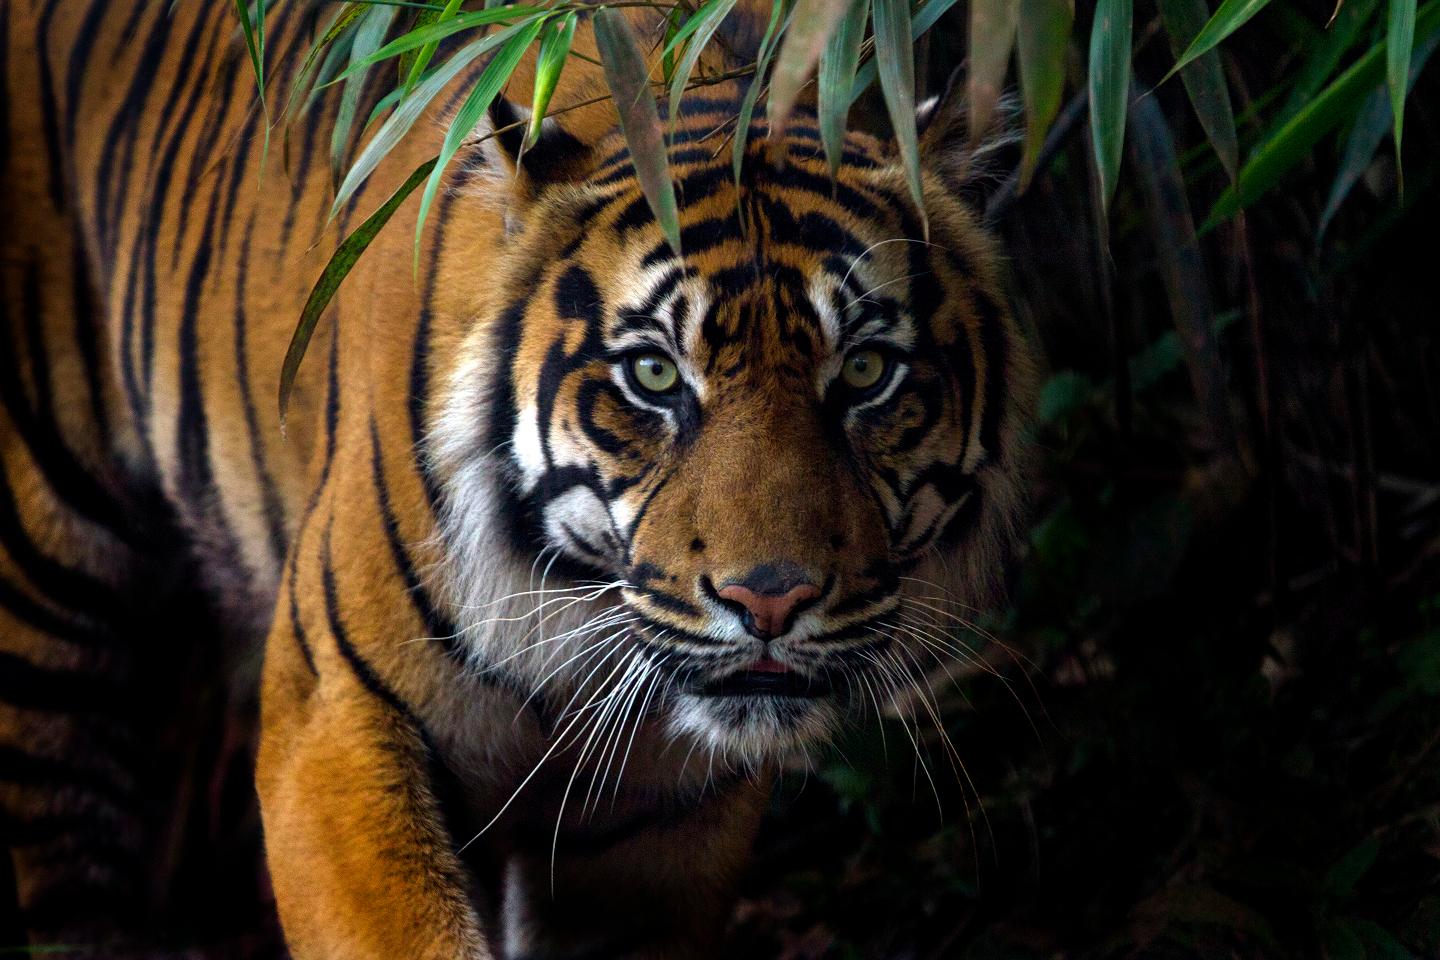 From Supermoms to great swimmer, here are 10 terrific tiger facts you may not know!